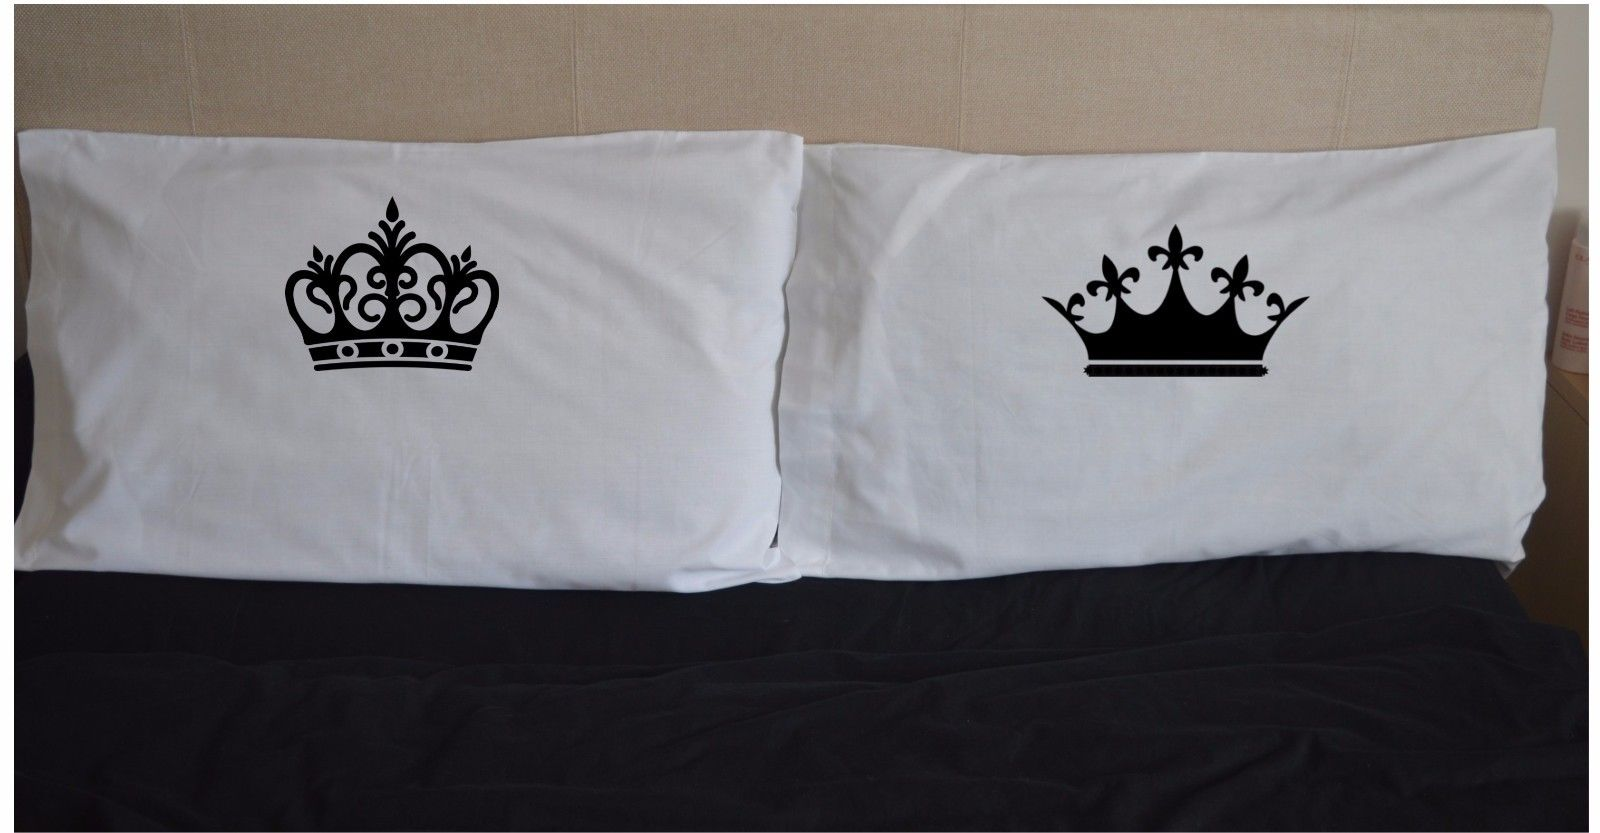 King & Queen Crowns Funny Pillowcases